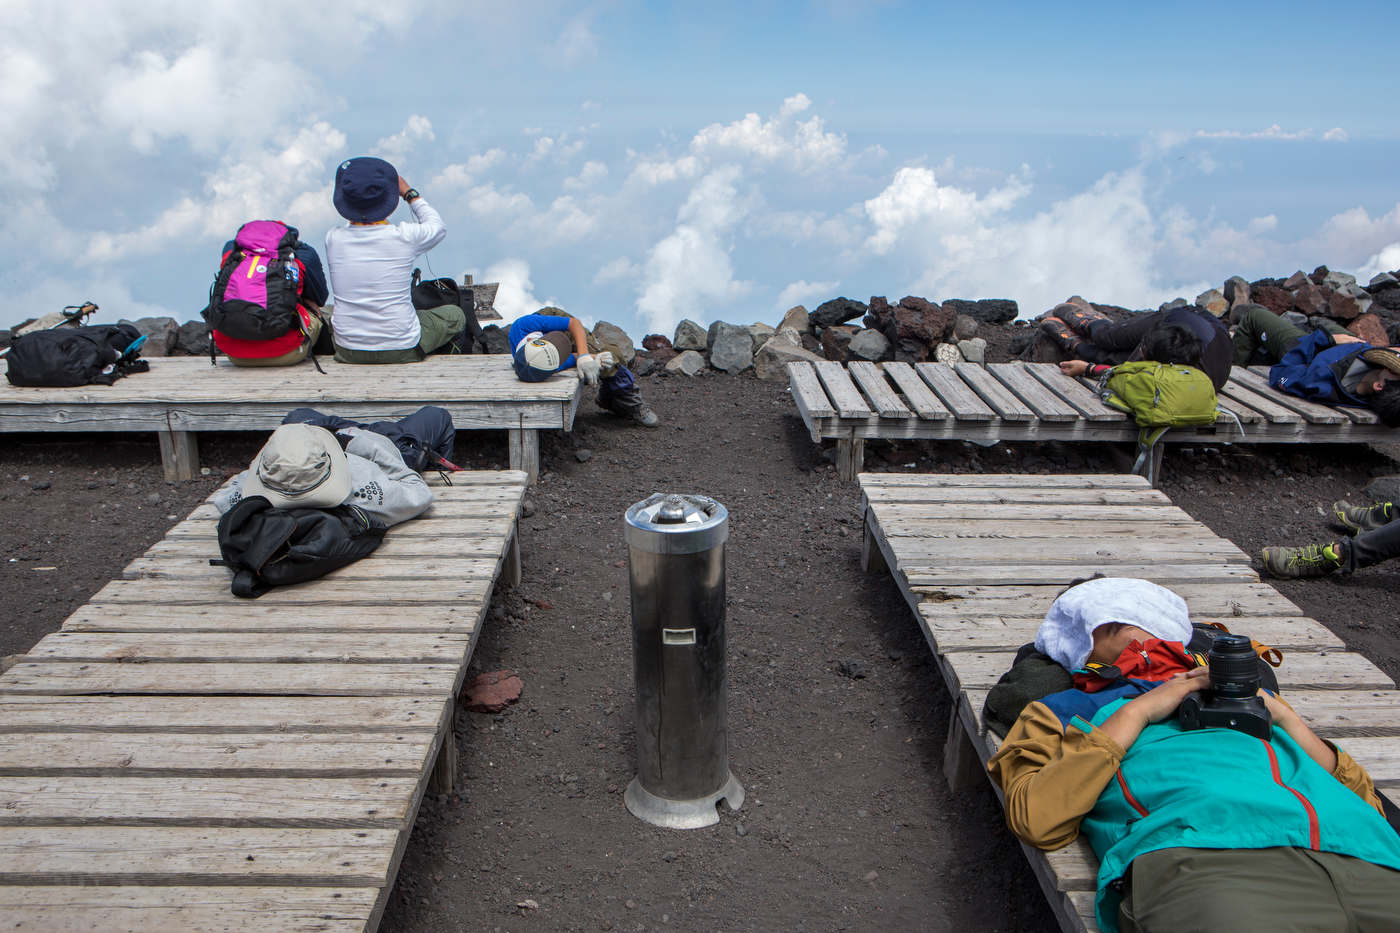 Exhausted hikers rest on wooden benches after reaching Mount Fuji's 13,389 ft summit.